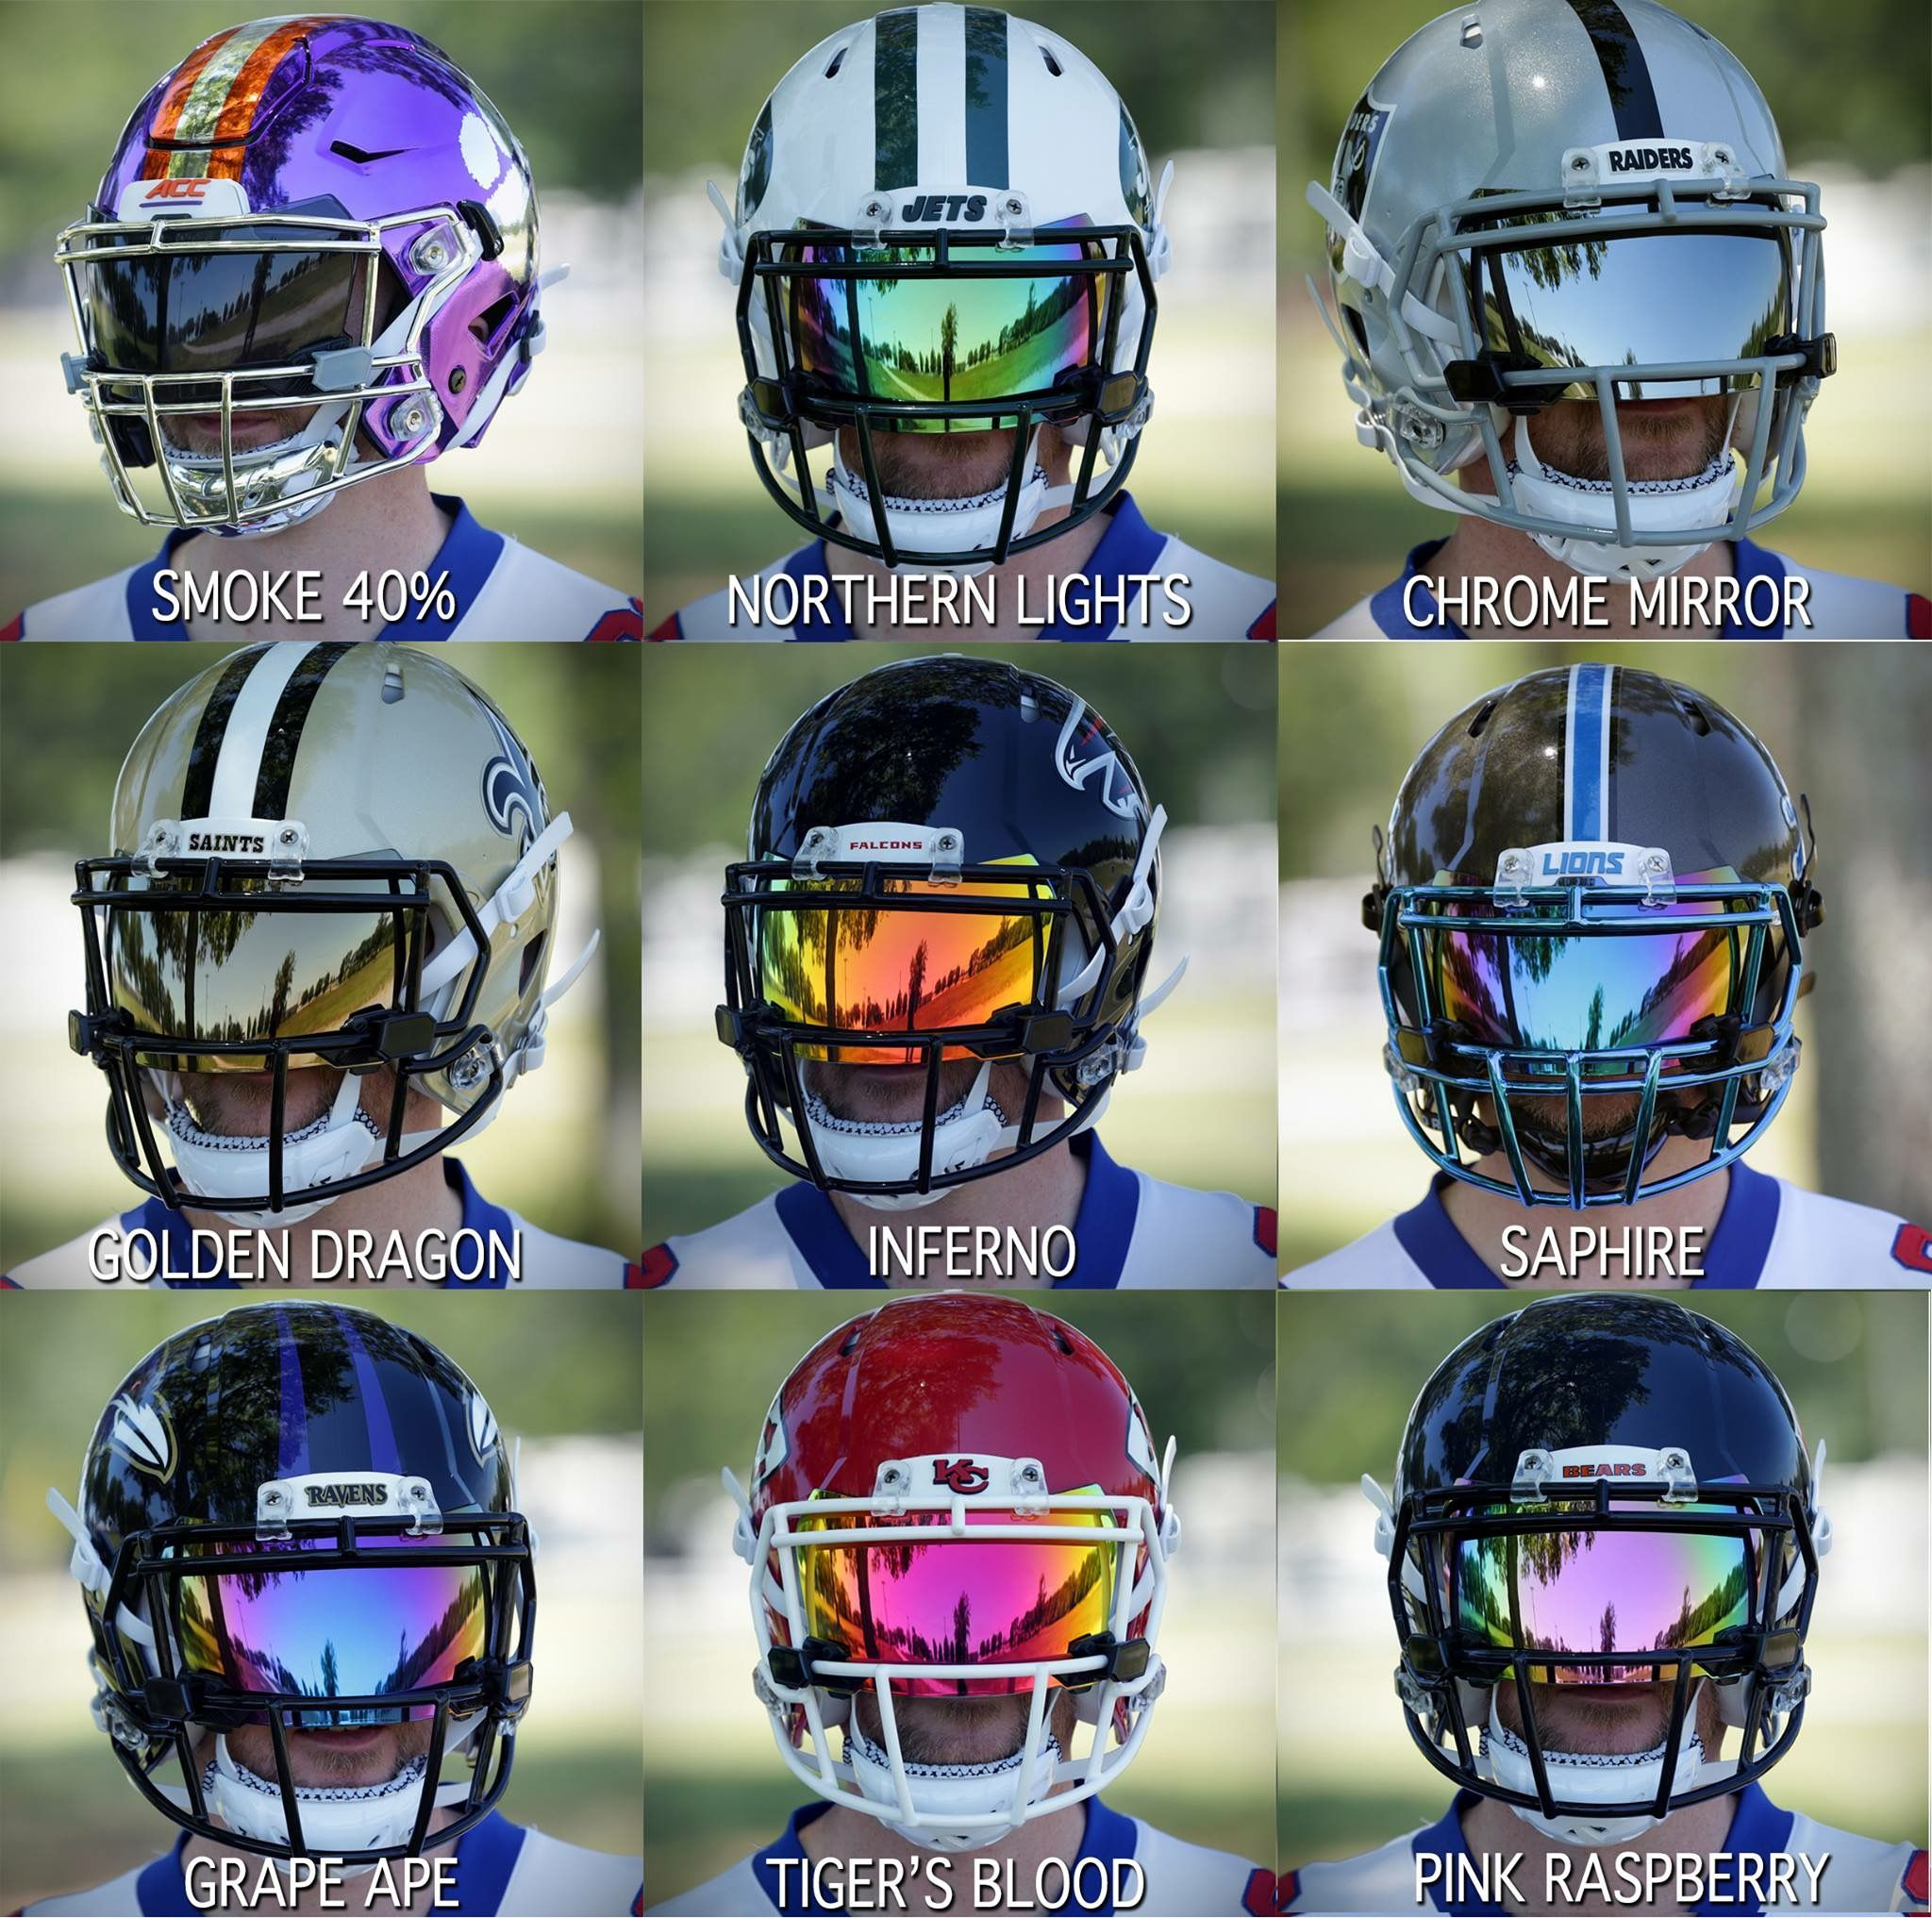 fb3d88569 SHOC 2.0 Lightning Football visors will fit the most common helmets today  from Schutt Riddell Xenith and even the all new Vicis